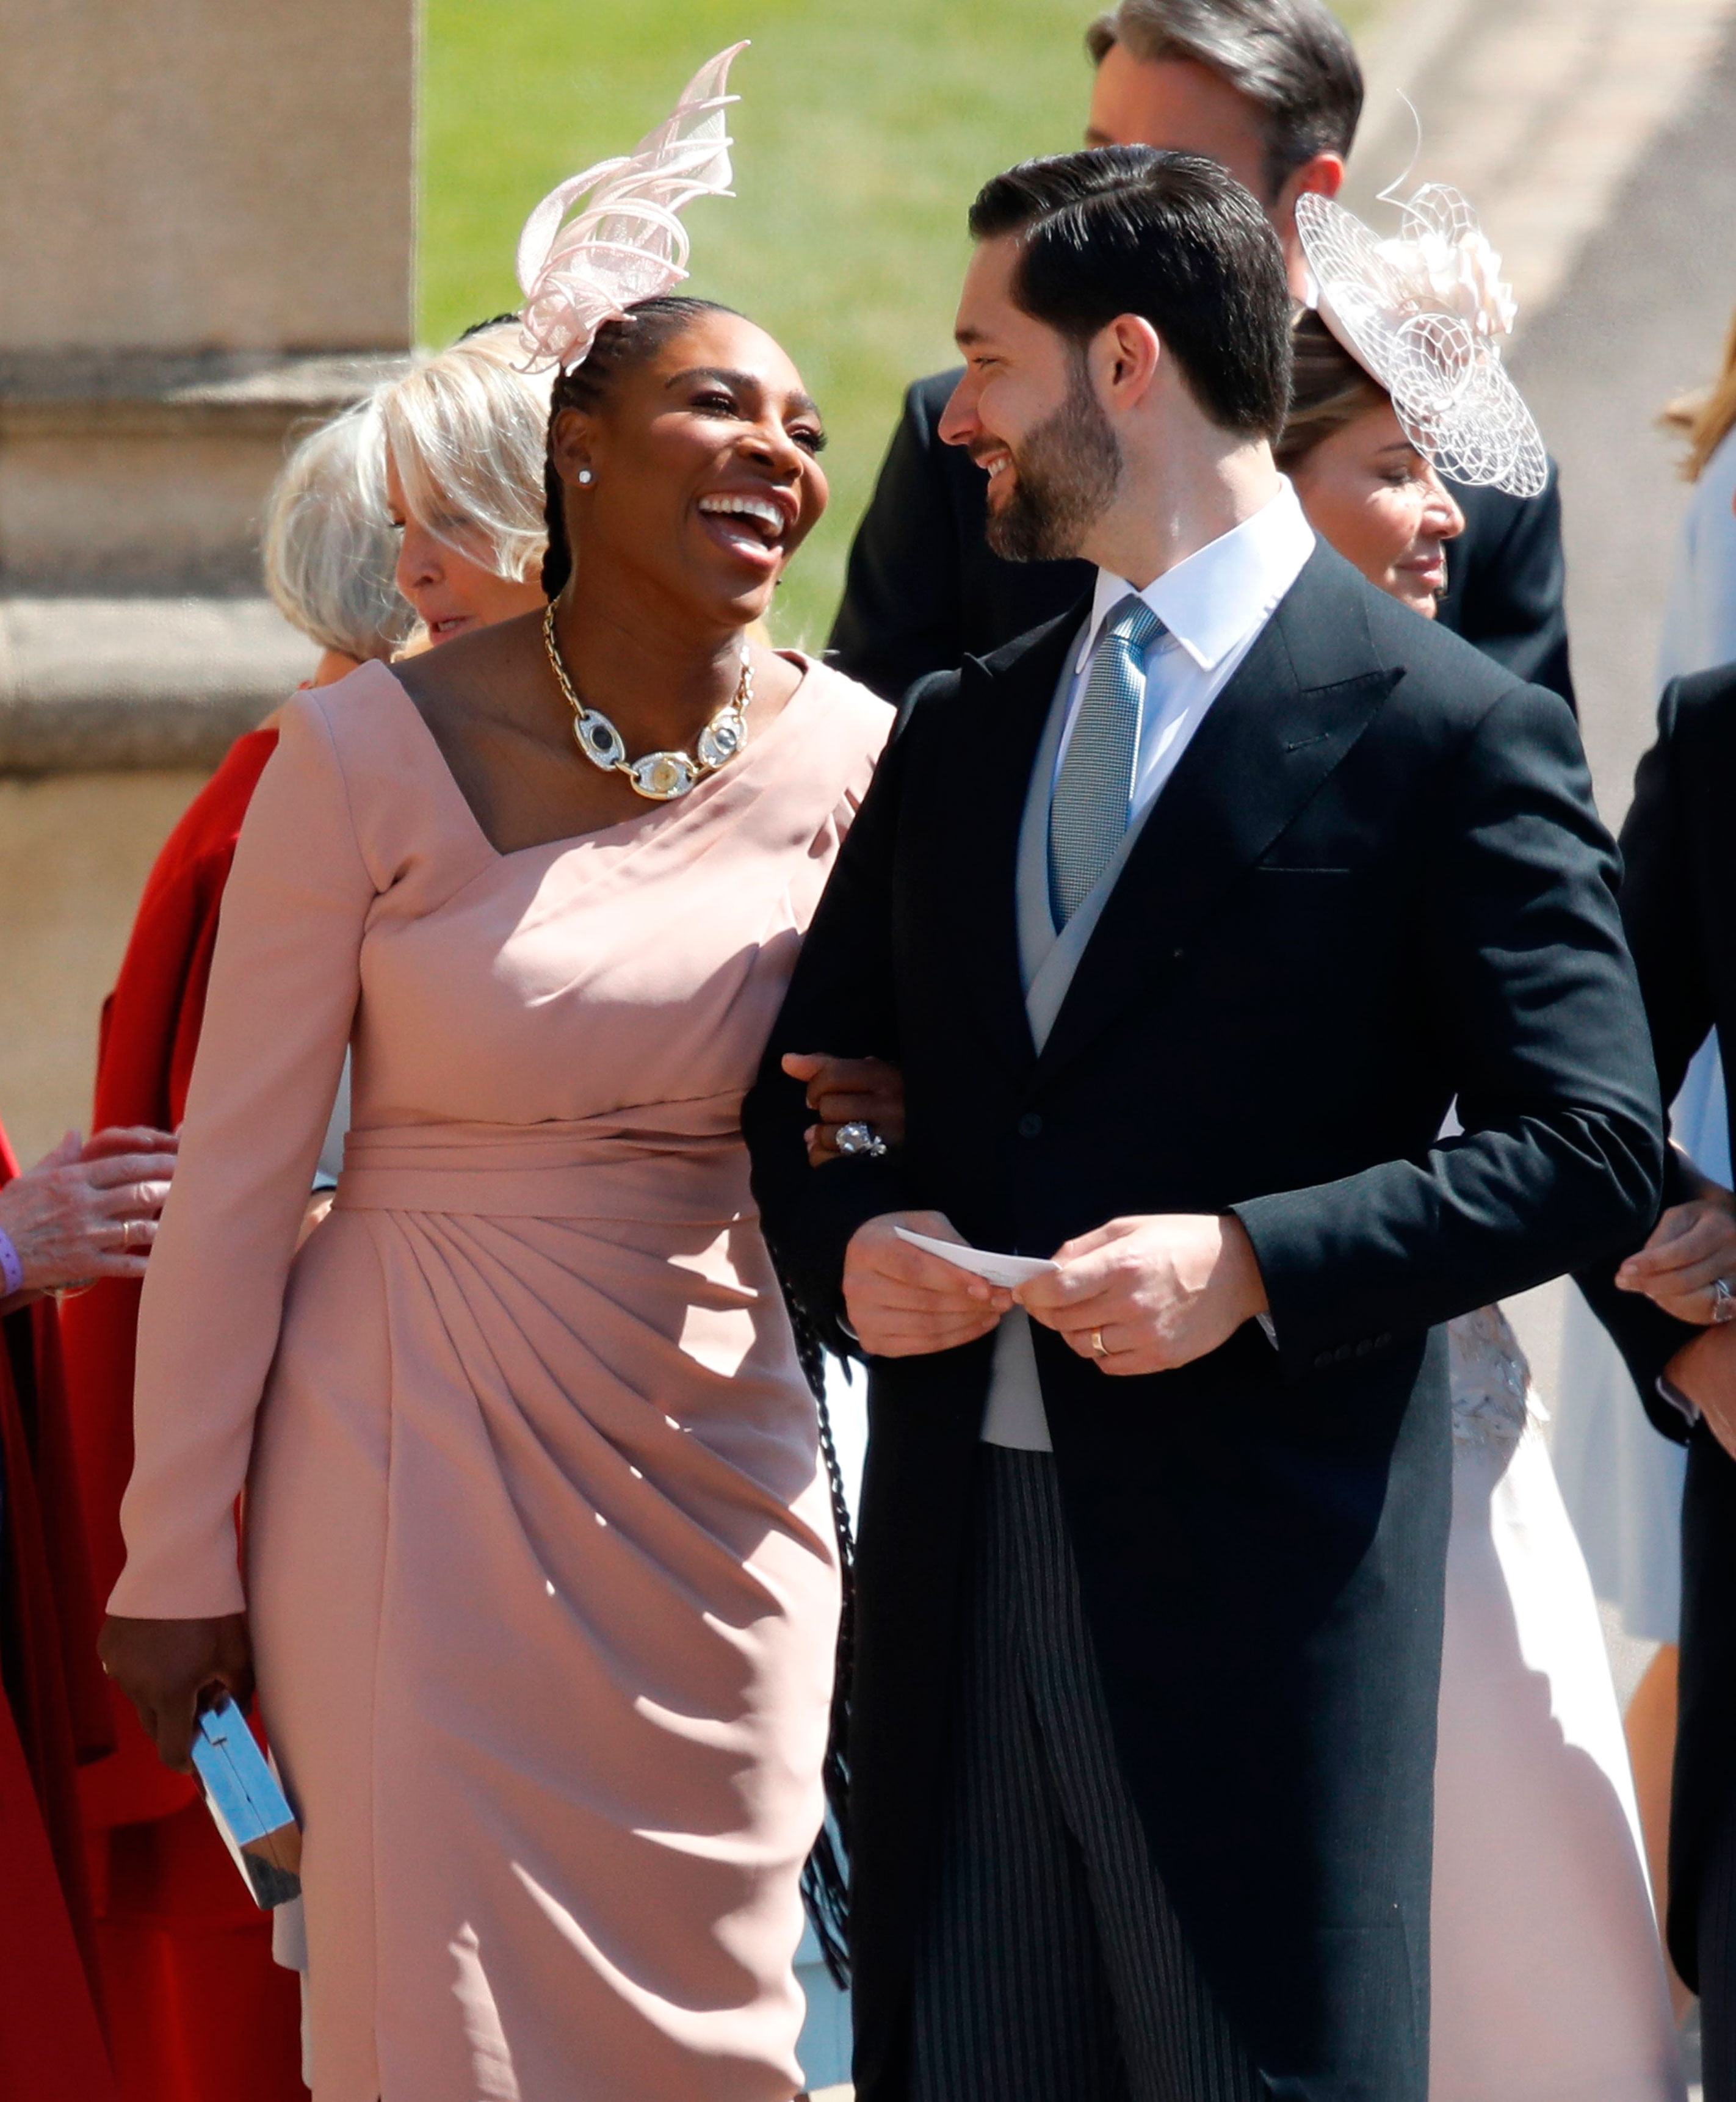 Serena Williams on How Alexis Ohanian Captured Her Heart: 'He Doesn't Try to Dim My Light' - Serena Williams smiling at her husband Alexis Ohanian as they arrive for the wedding ceremony of Prince Harry and Meghan Markle at St George's Chapel, in Windsor, England on May 19, 2018.